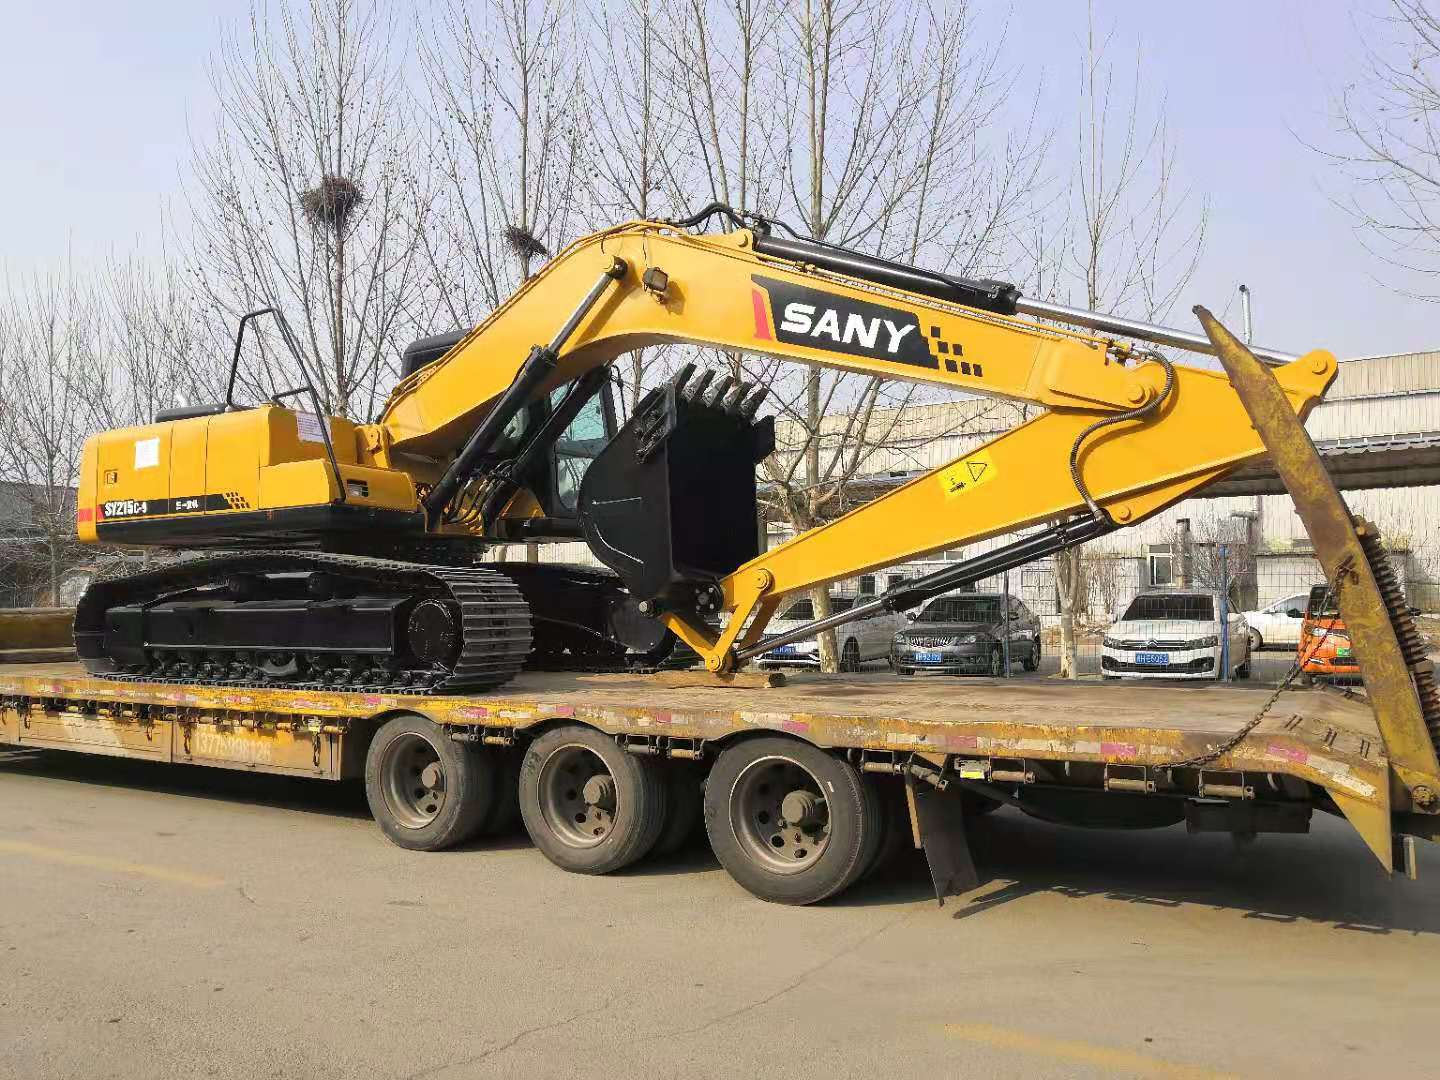 1 Unit of SANY Excavator SY215C-9 to Africa